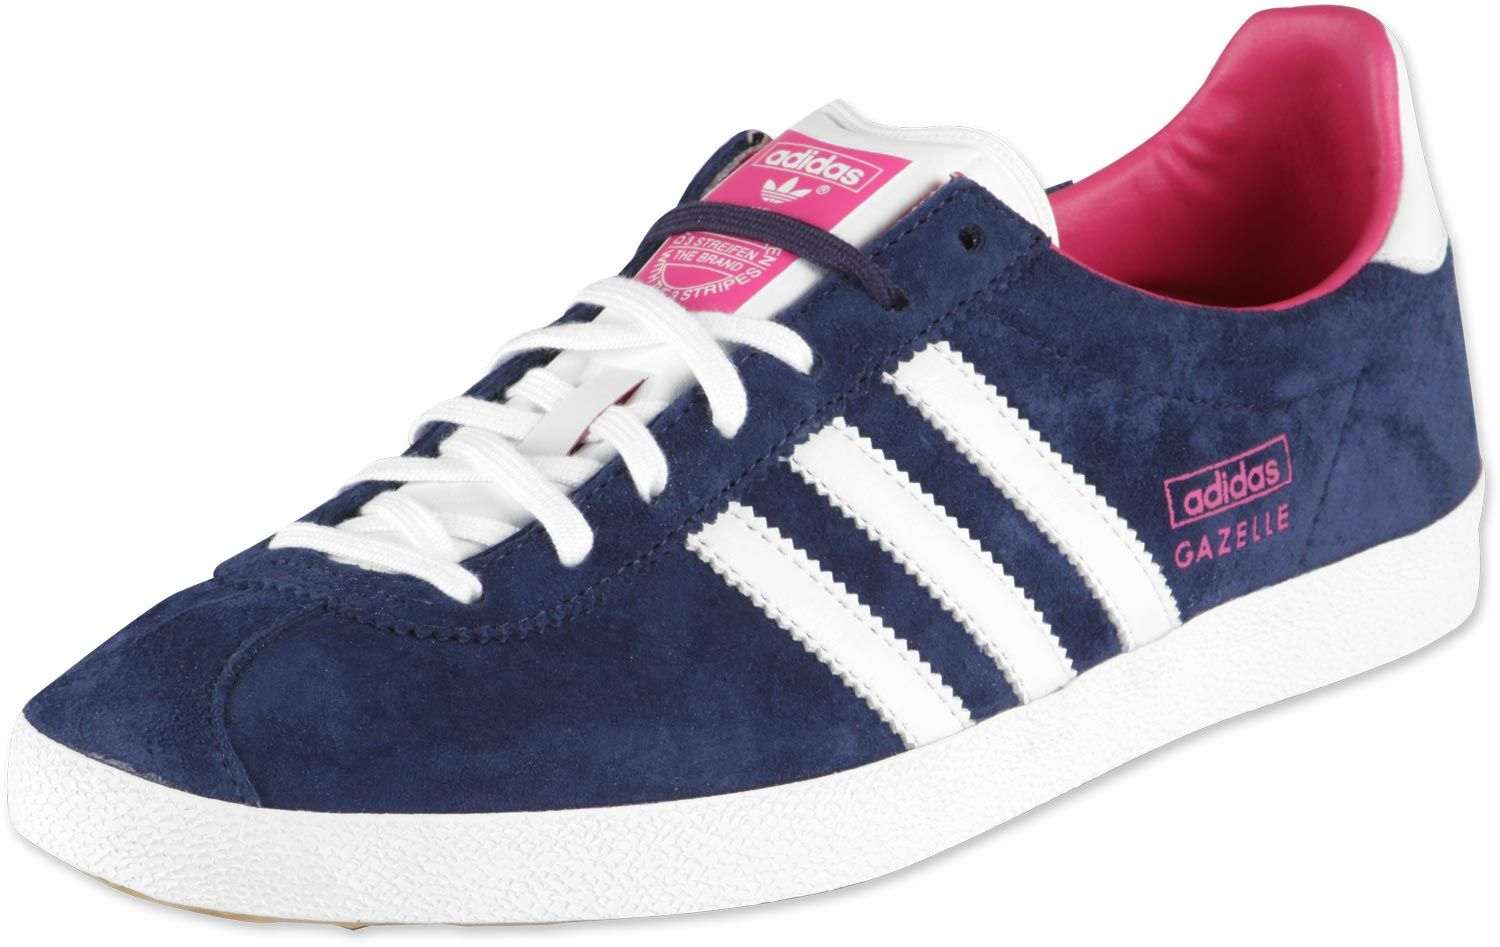 Adidas Gazelle Pink And Blue